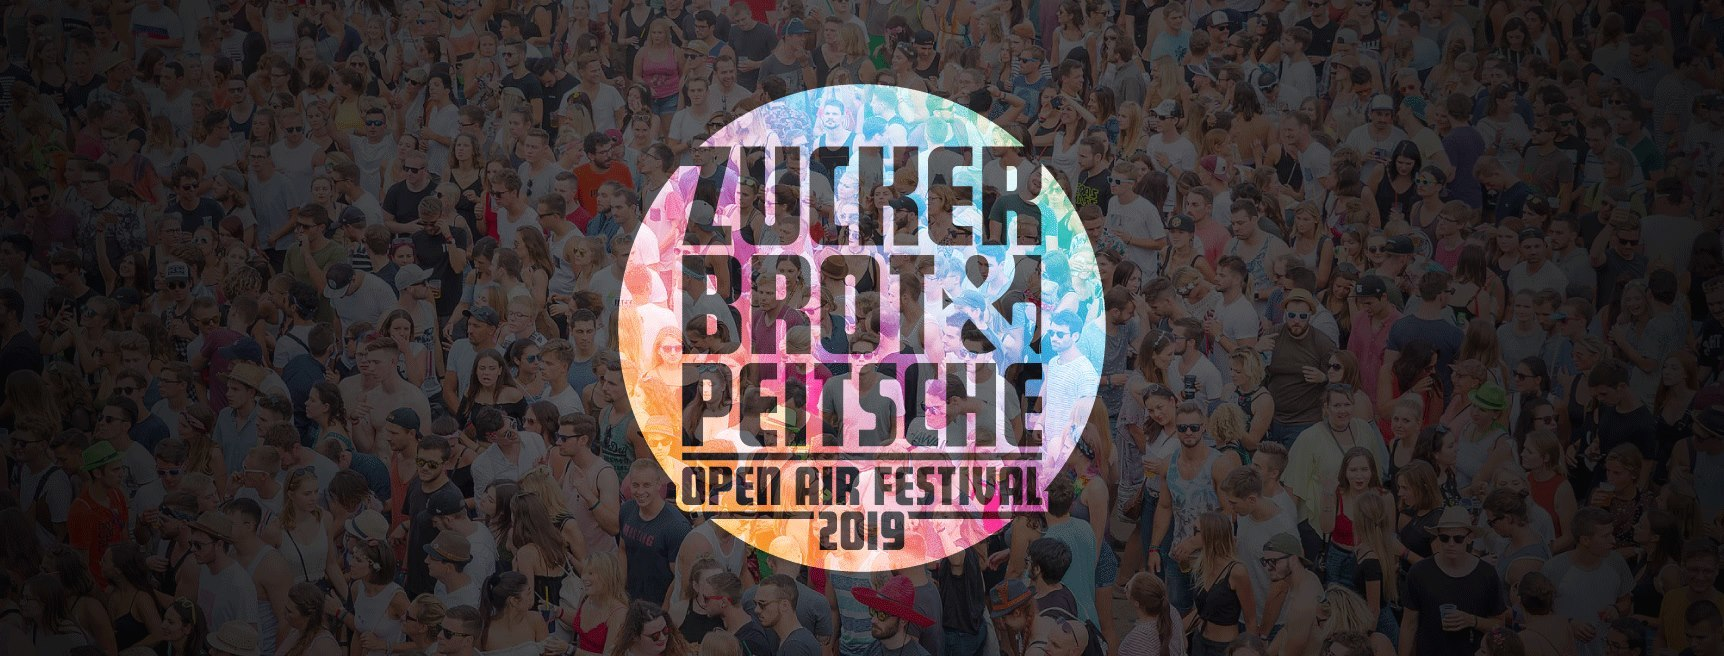 © Zuckerbrot & Peitsche Open Air